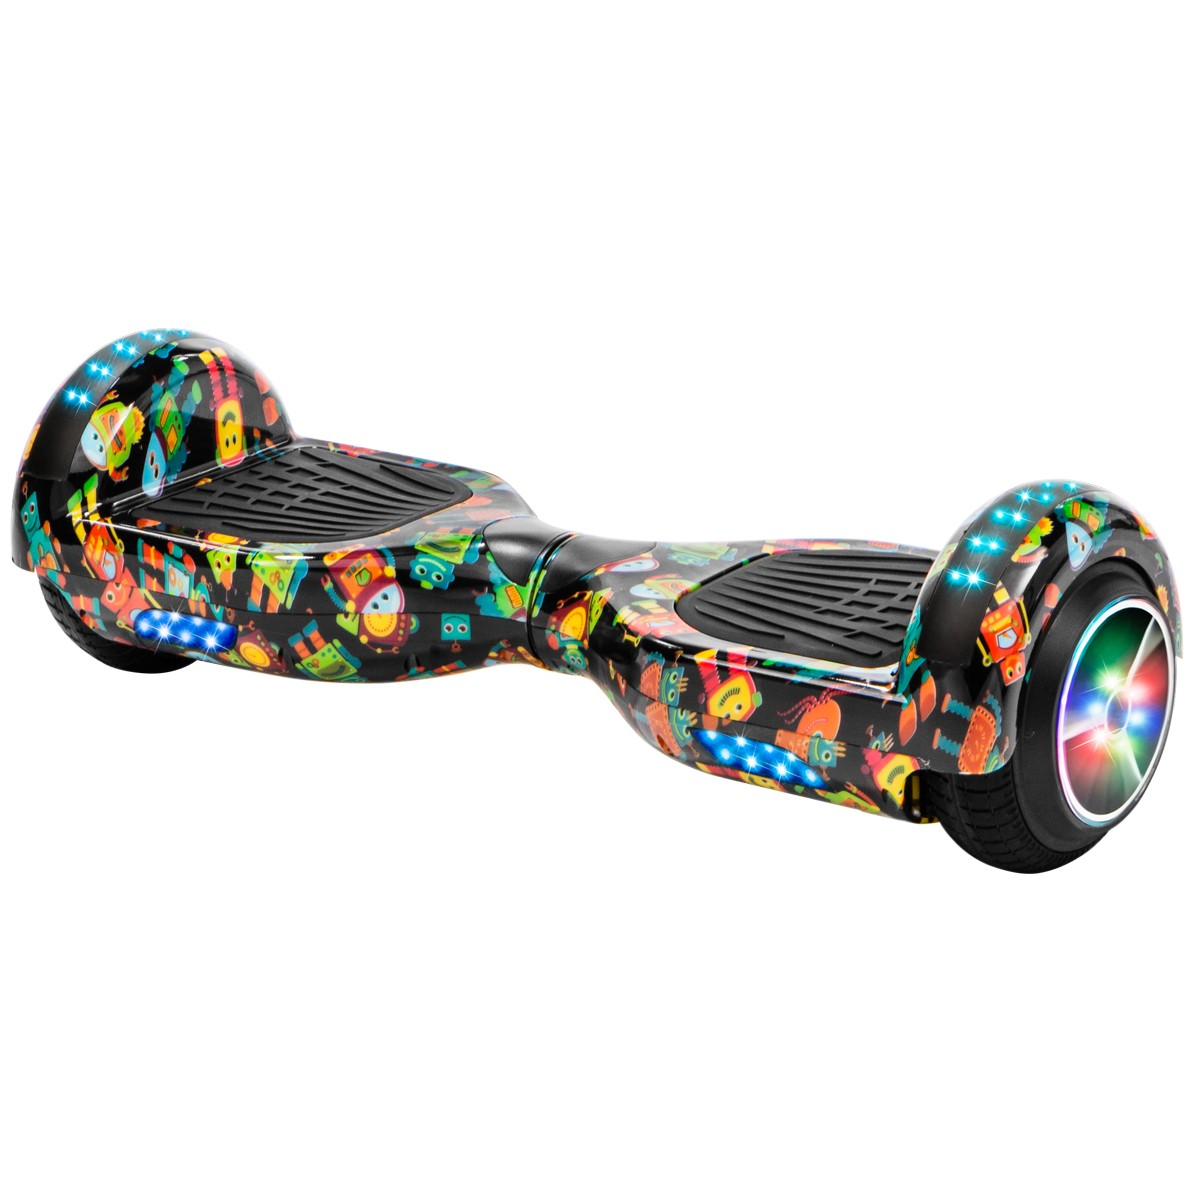 XtremepowerUS Bluetooth Hoverboard w/Speaker Smart Self-Balancing Scooter 2 Wheels Electric Hoverboard UL Certified Matte Purple